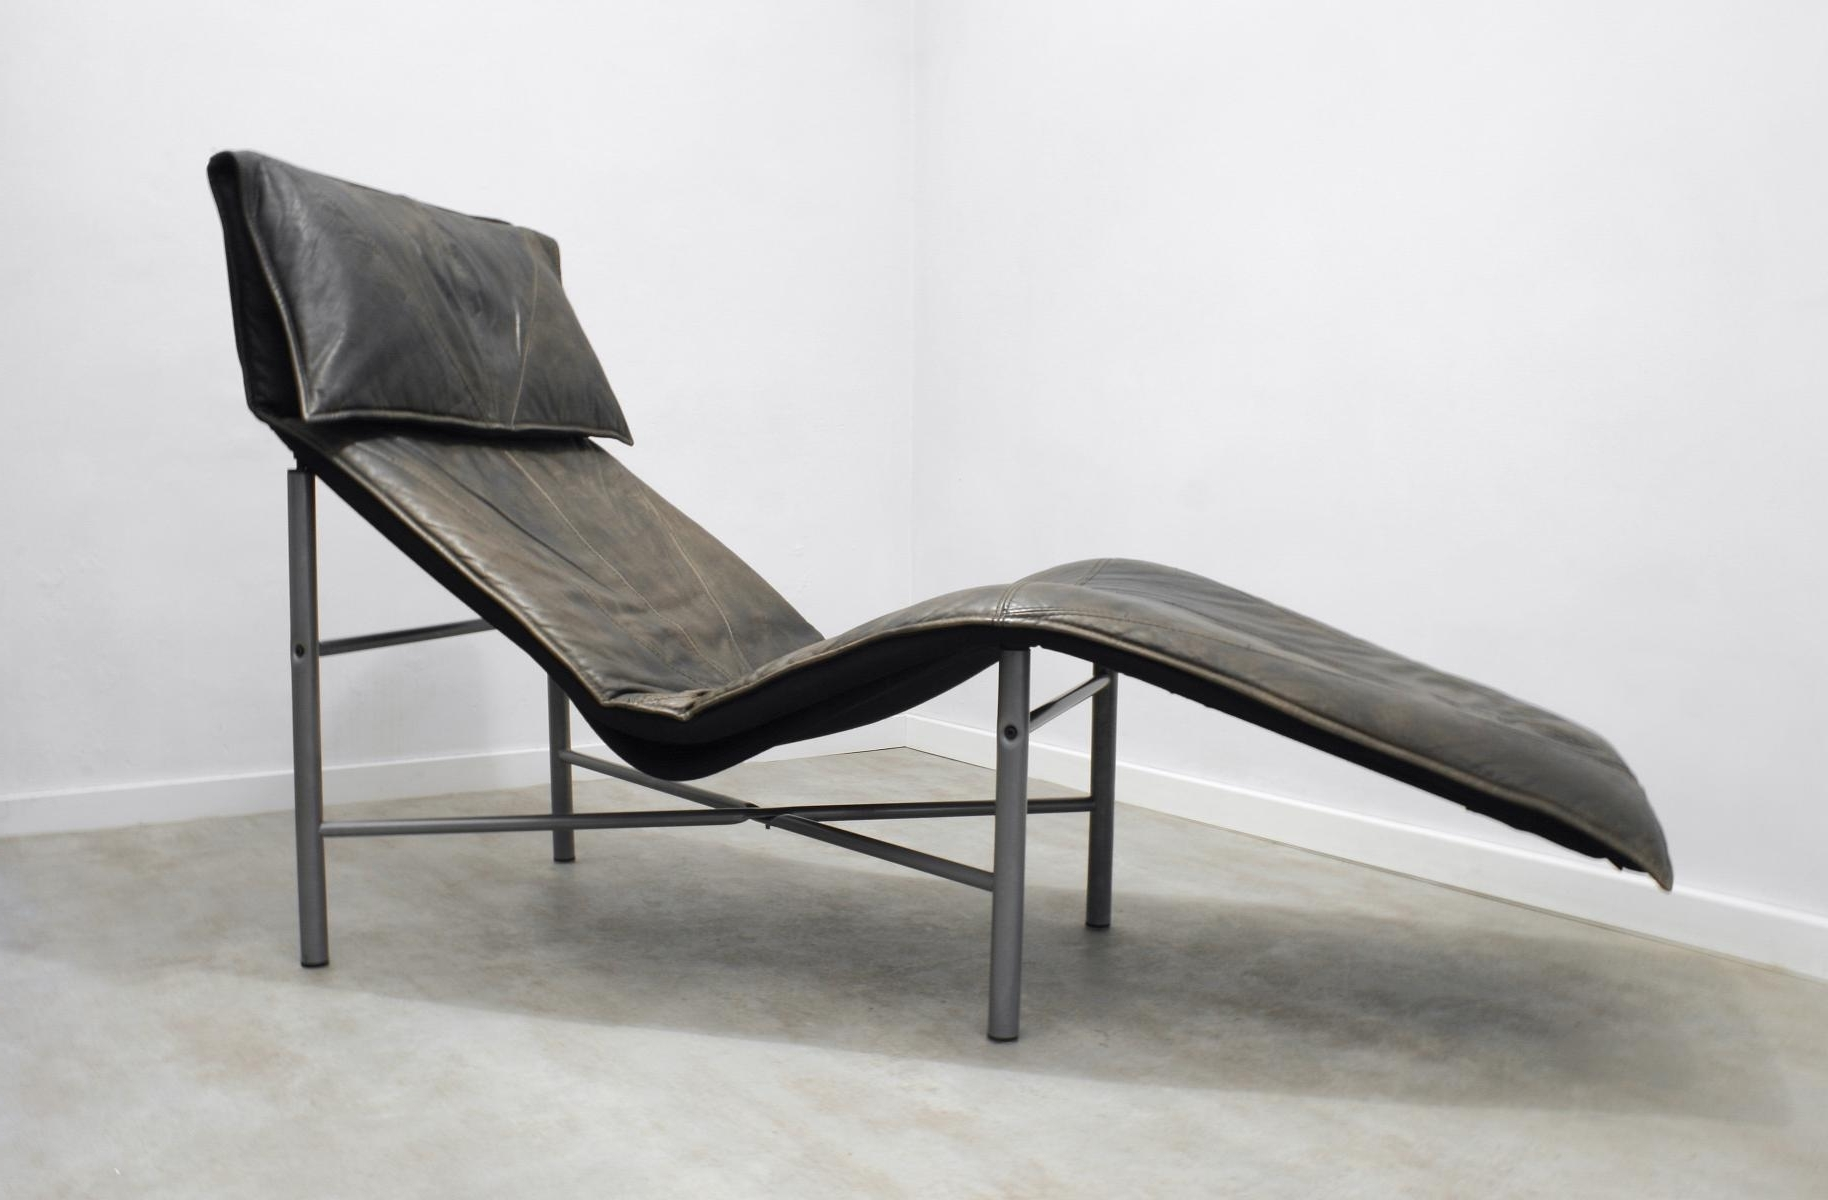 Well Known Ikea Chaise Lounges In Brown Leather Skye Chaise Loungetord Björklund For Ikea, 1980S (View 12 of 15)